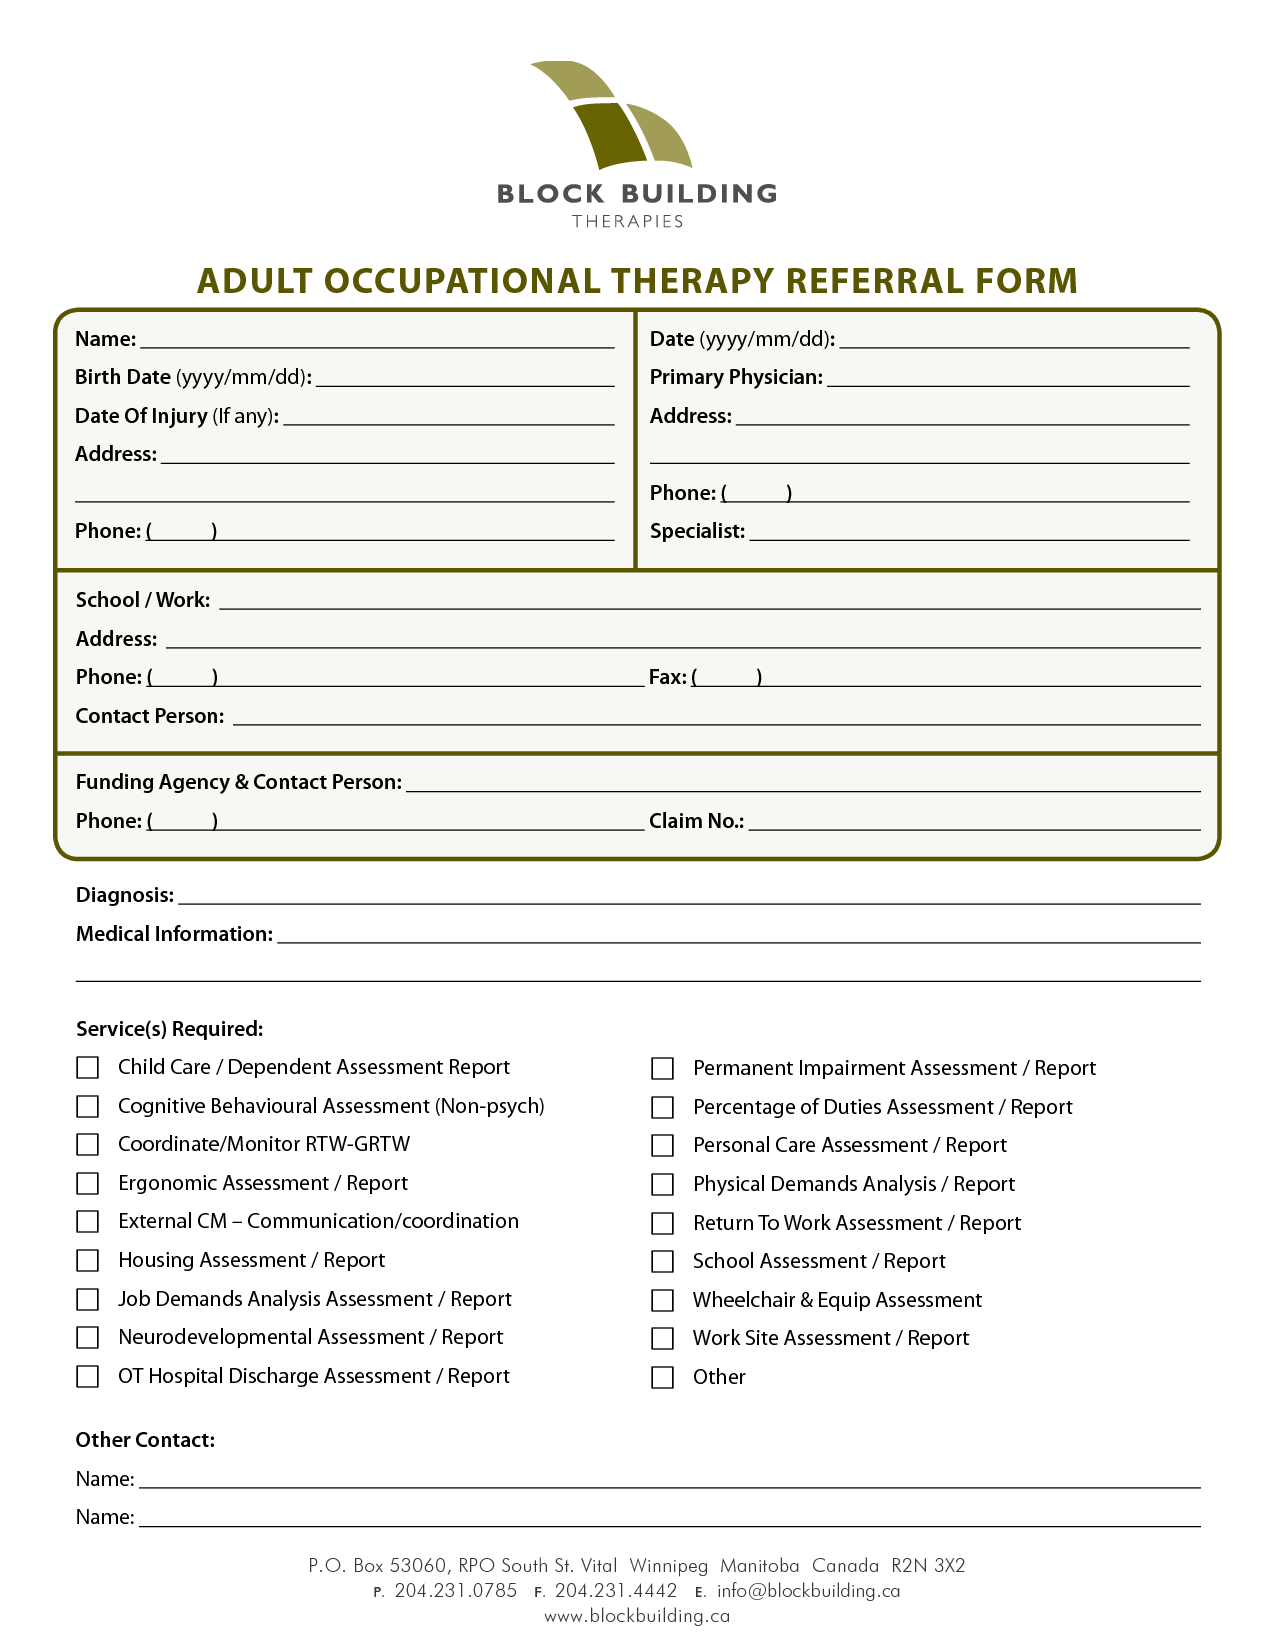 tenncare occupational therapy templates | ADULT OCCUPATIONAL ...